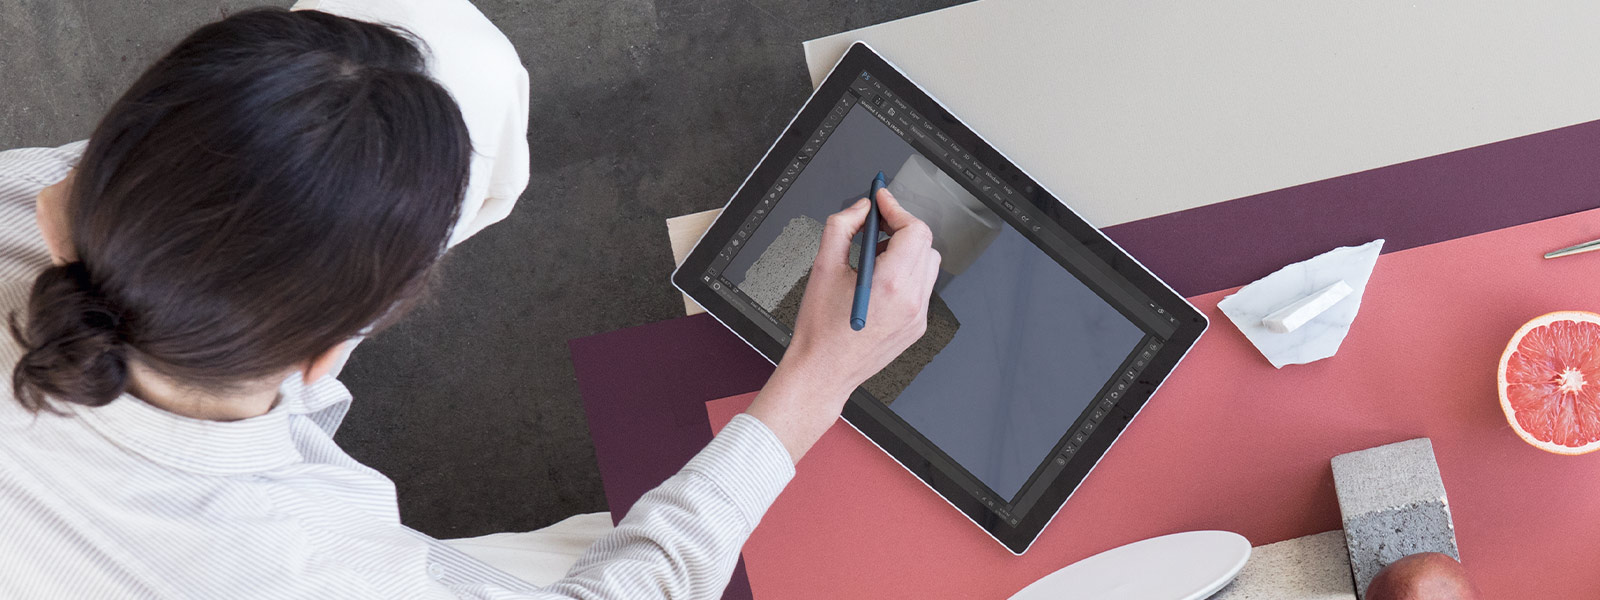 Person using Surface Pen on a Surface device.